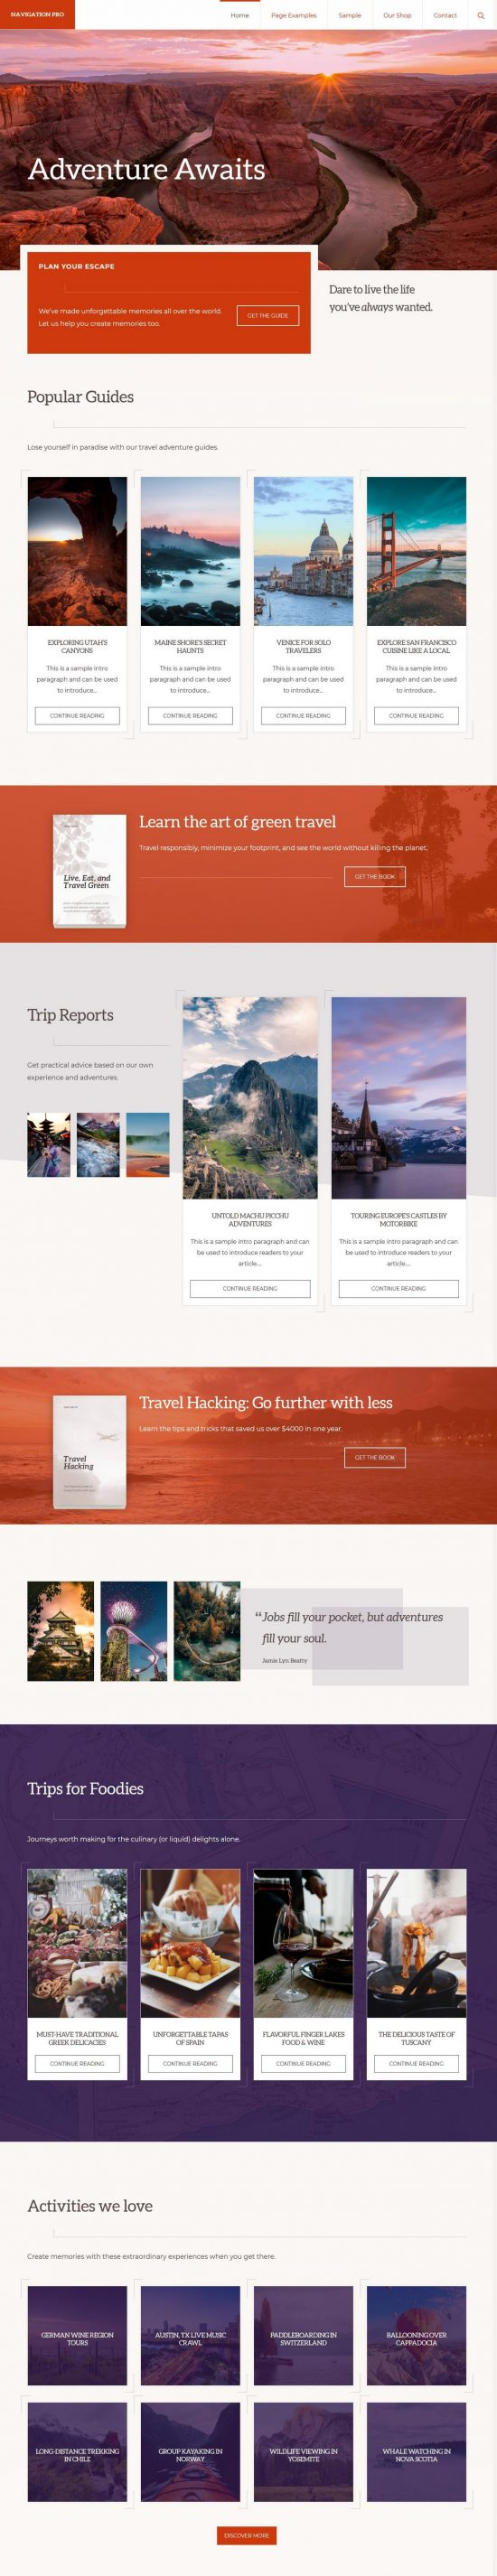 navigation pro studiopress wordpress theme 01 550x2852 - Navigation PRO WordPress Theme